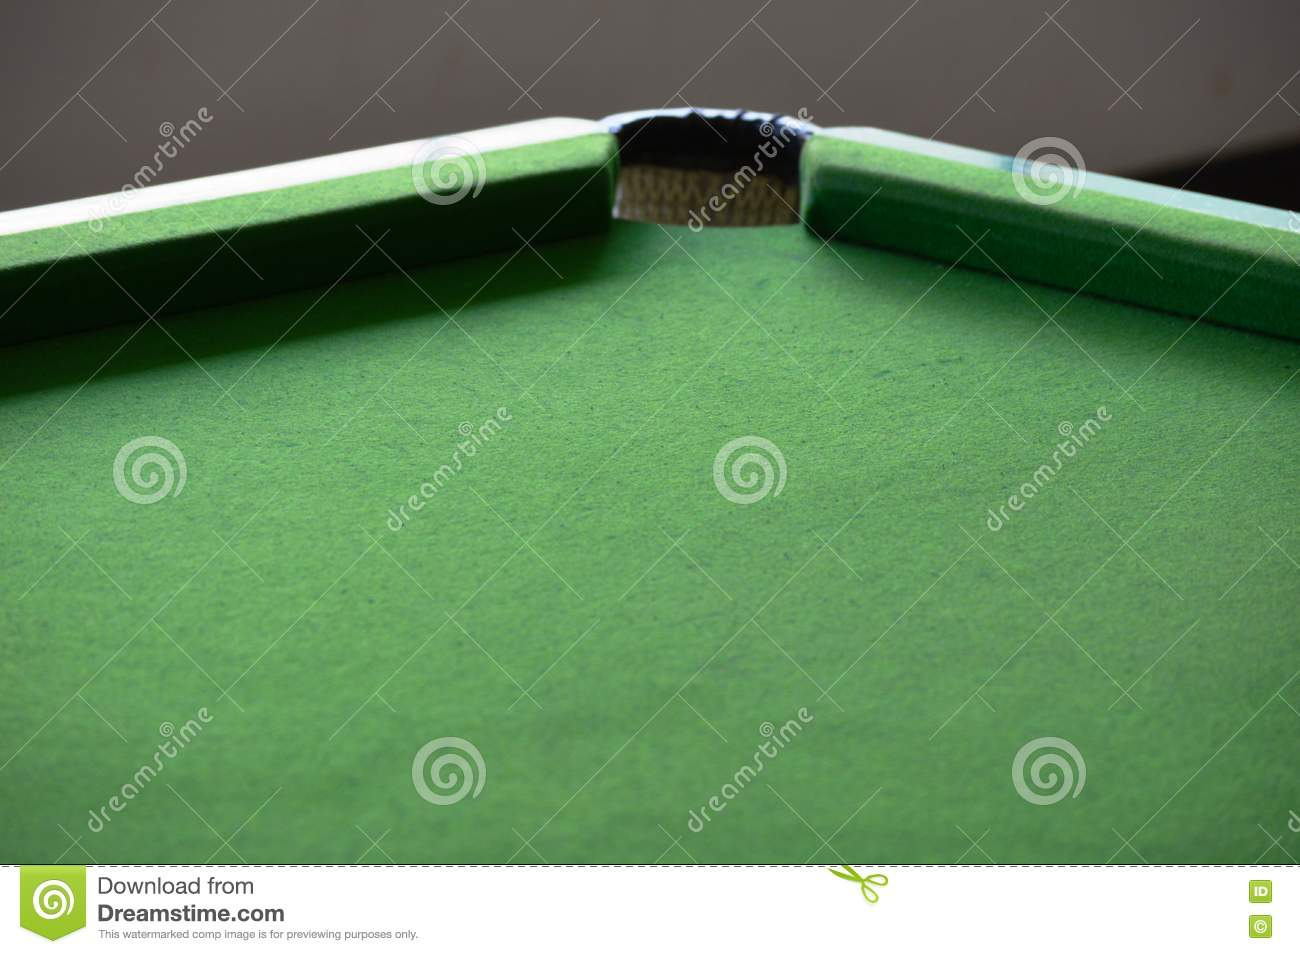 Empty pool table stock photo image 71725766 - Pool table green felt ...